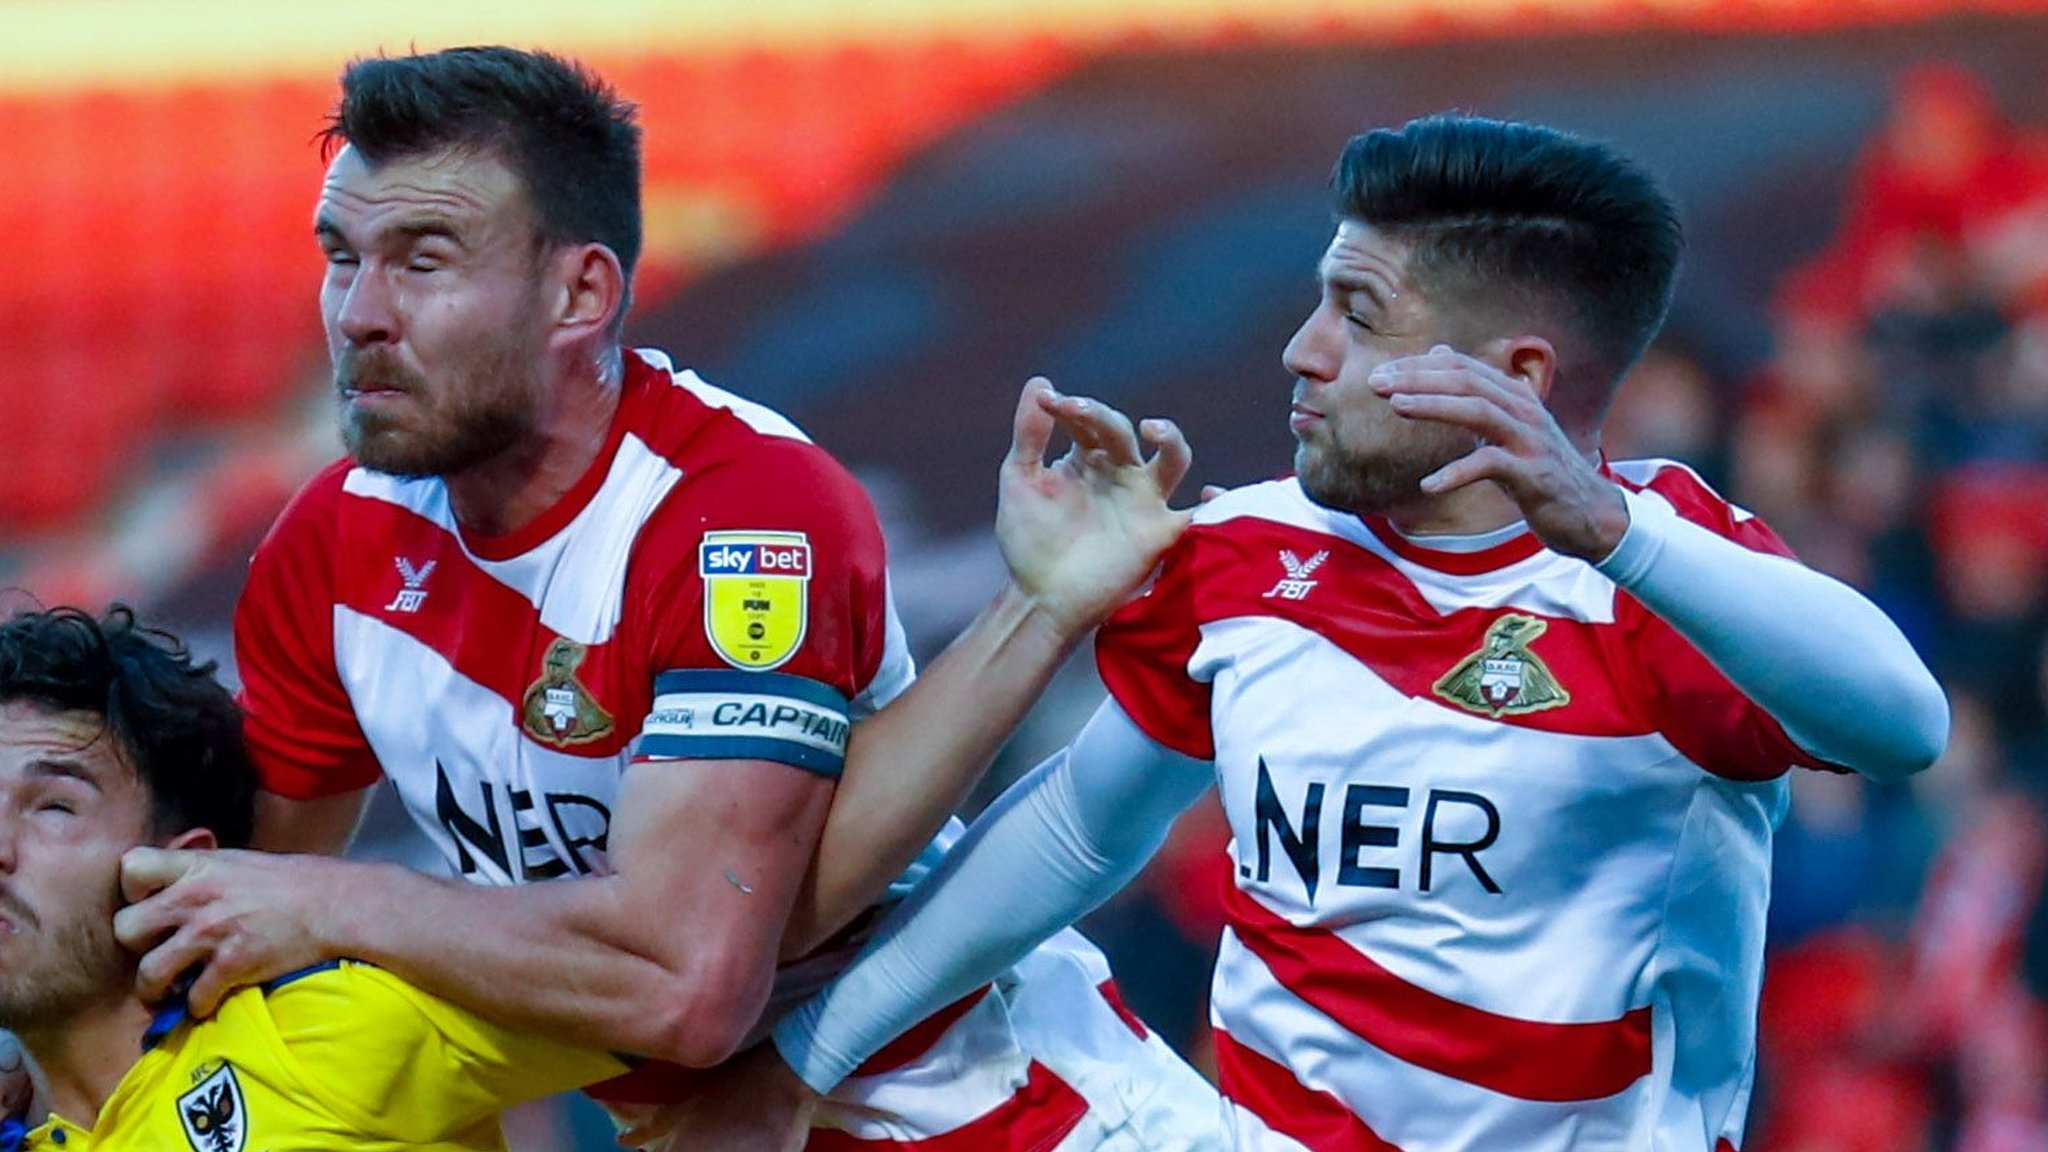 Doncaster Rovers: Tommy Rowe, Andy Butler & Danny Andrew offered new deals